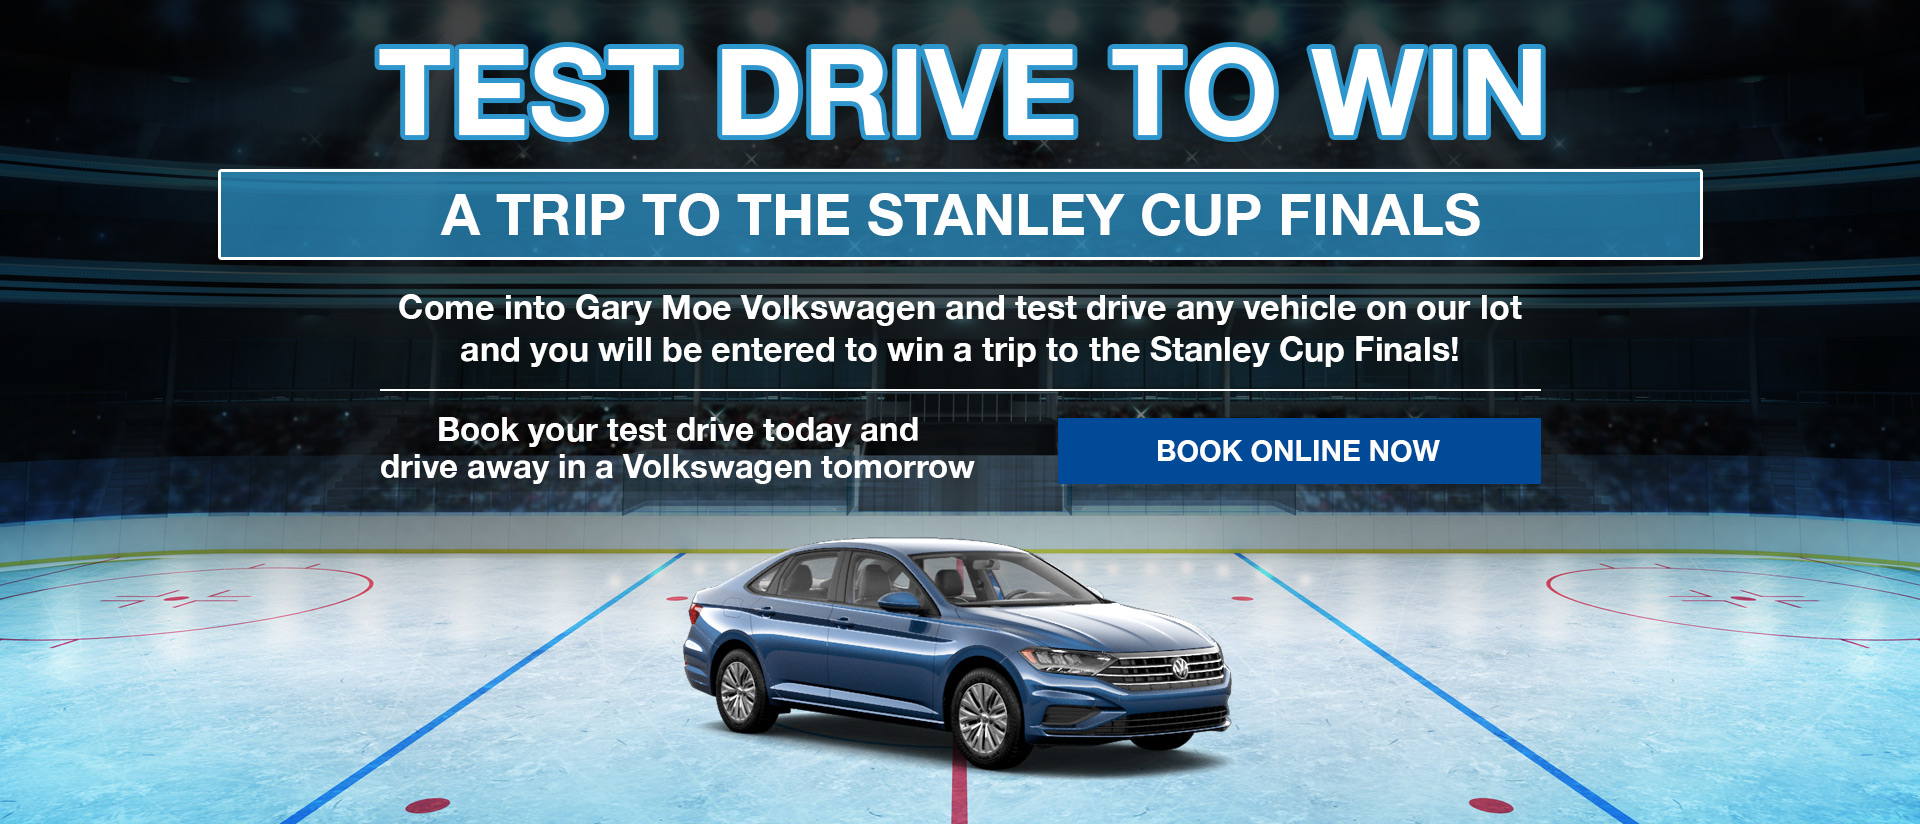 Test drive for the Stanley Cup Final